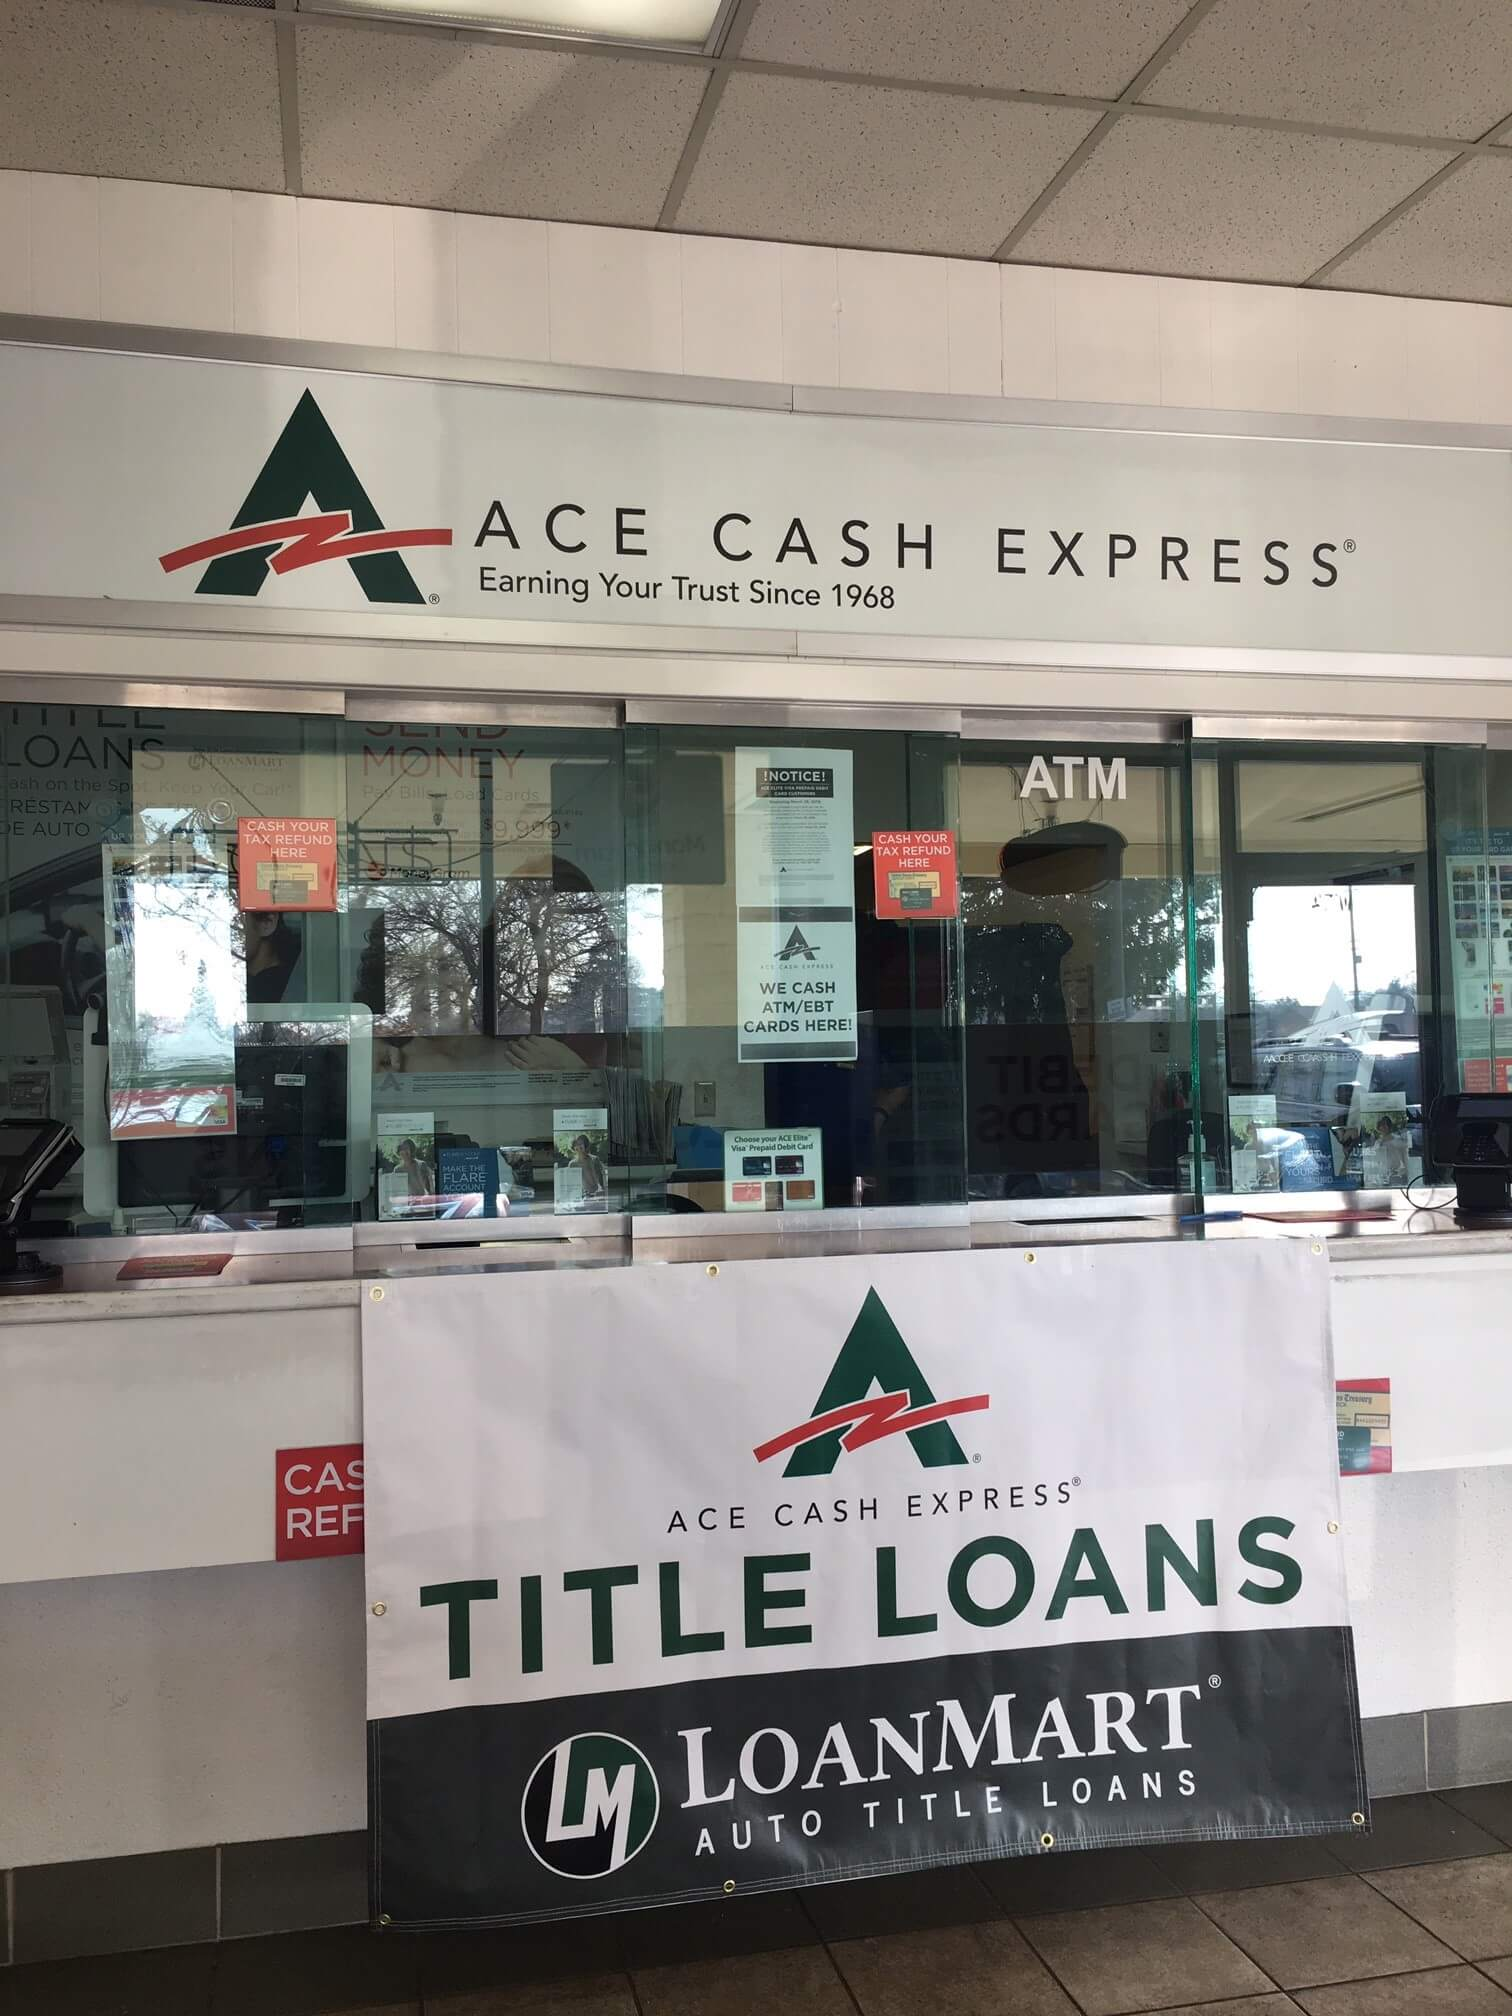 LoanMart Title Loans at ACE Cash Express image 3